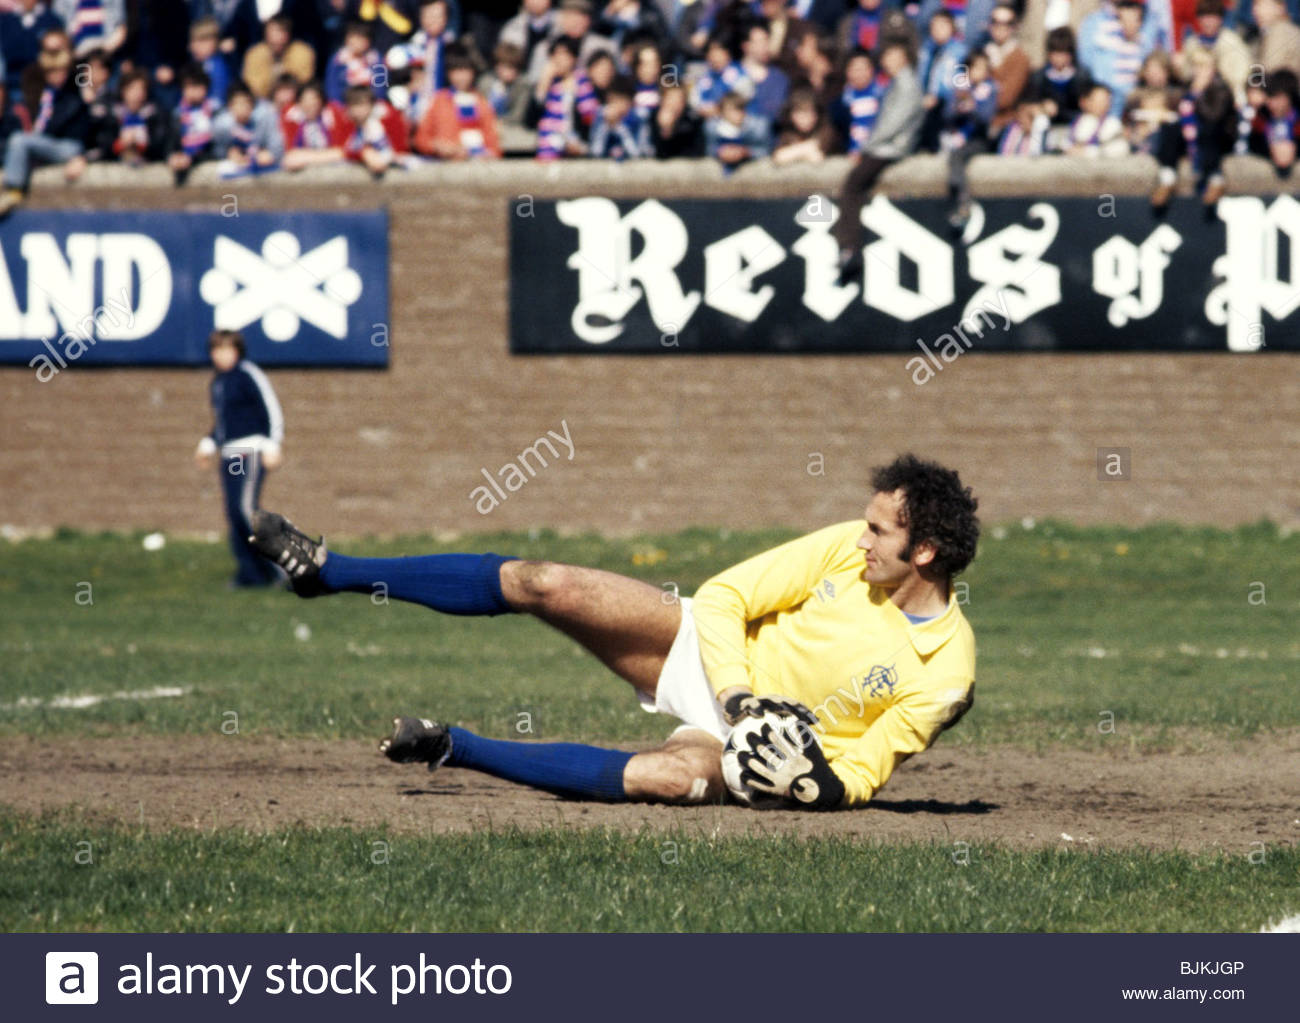 SEASON 1980/1981 PARTICK THISTLE v RANGERS FIRHILL - GLASGOW Peter McCloy in action for Rangers. - Stock Image